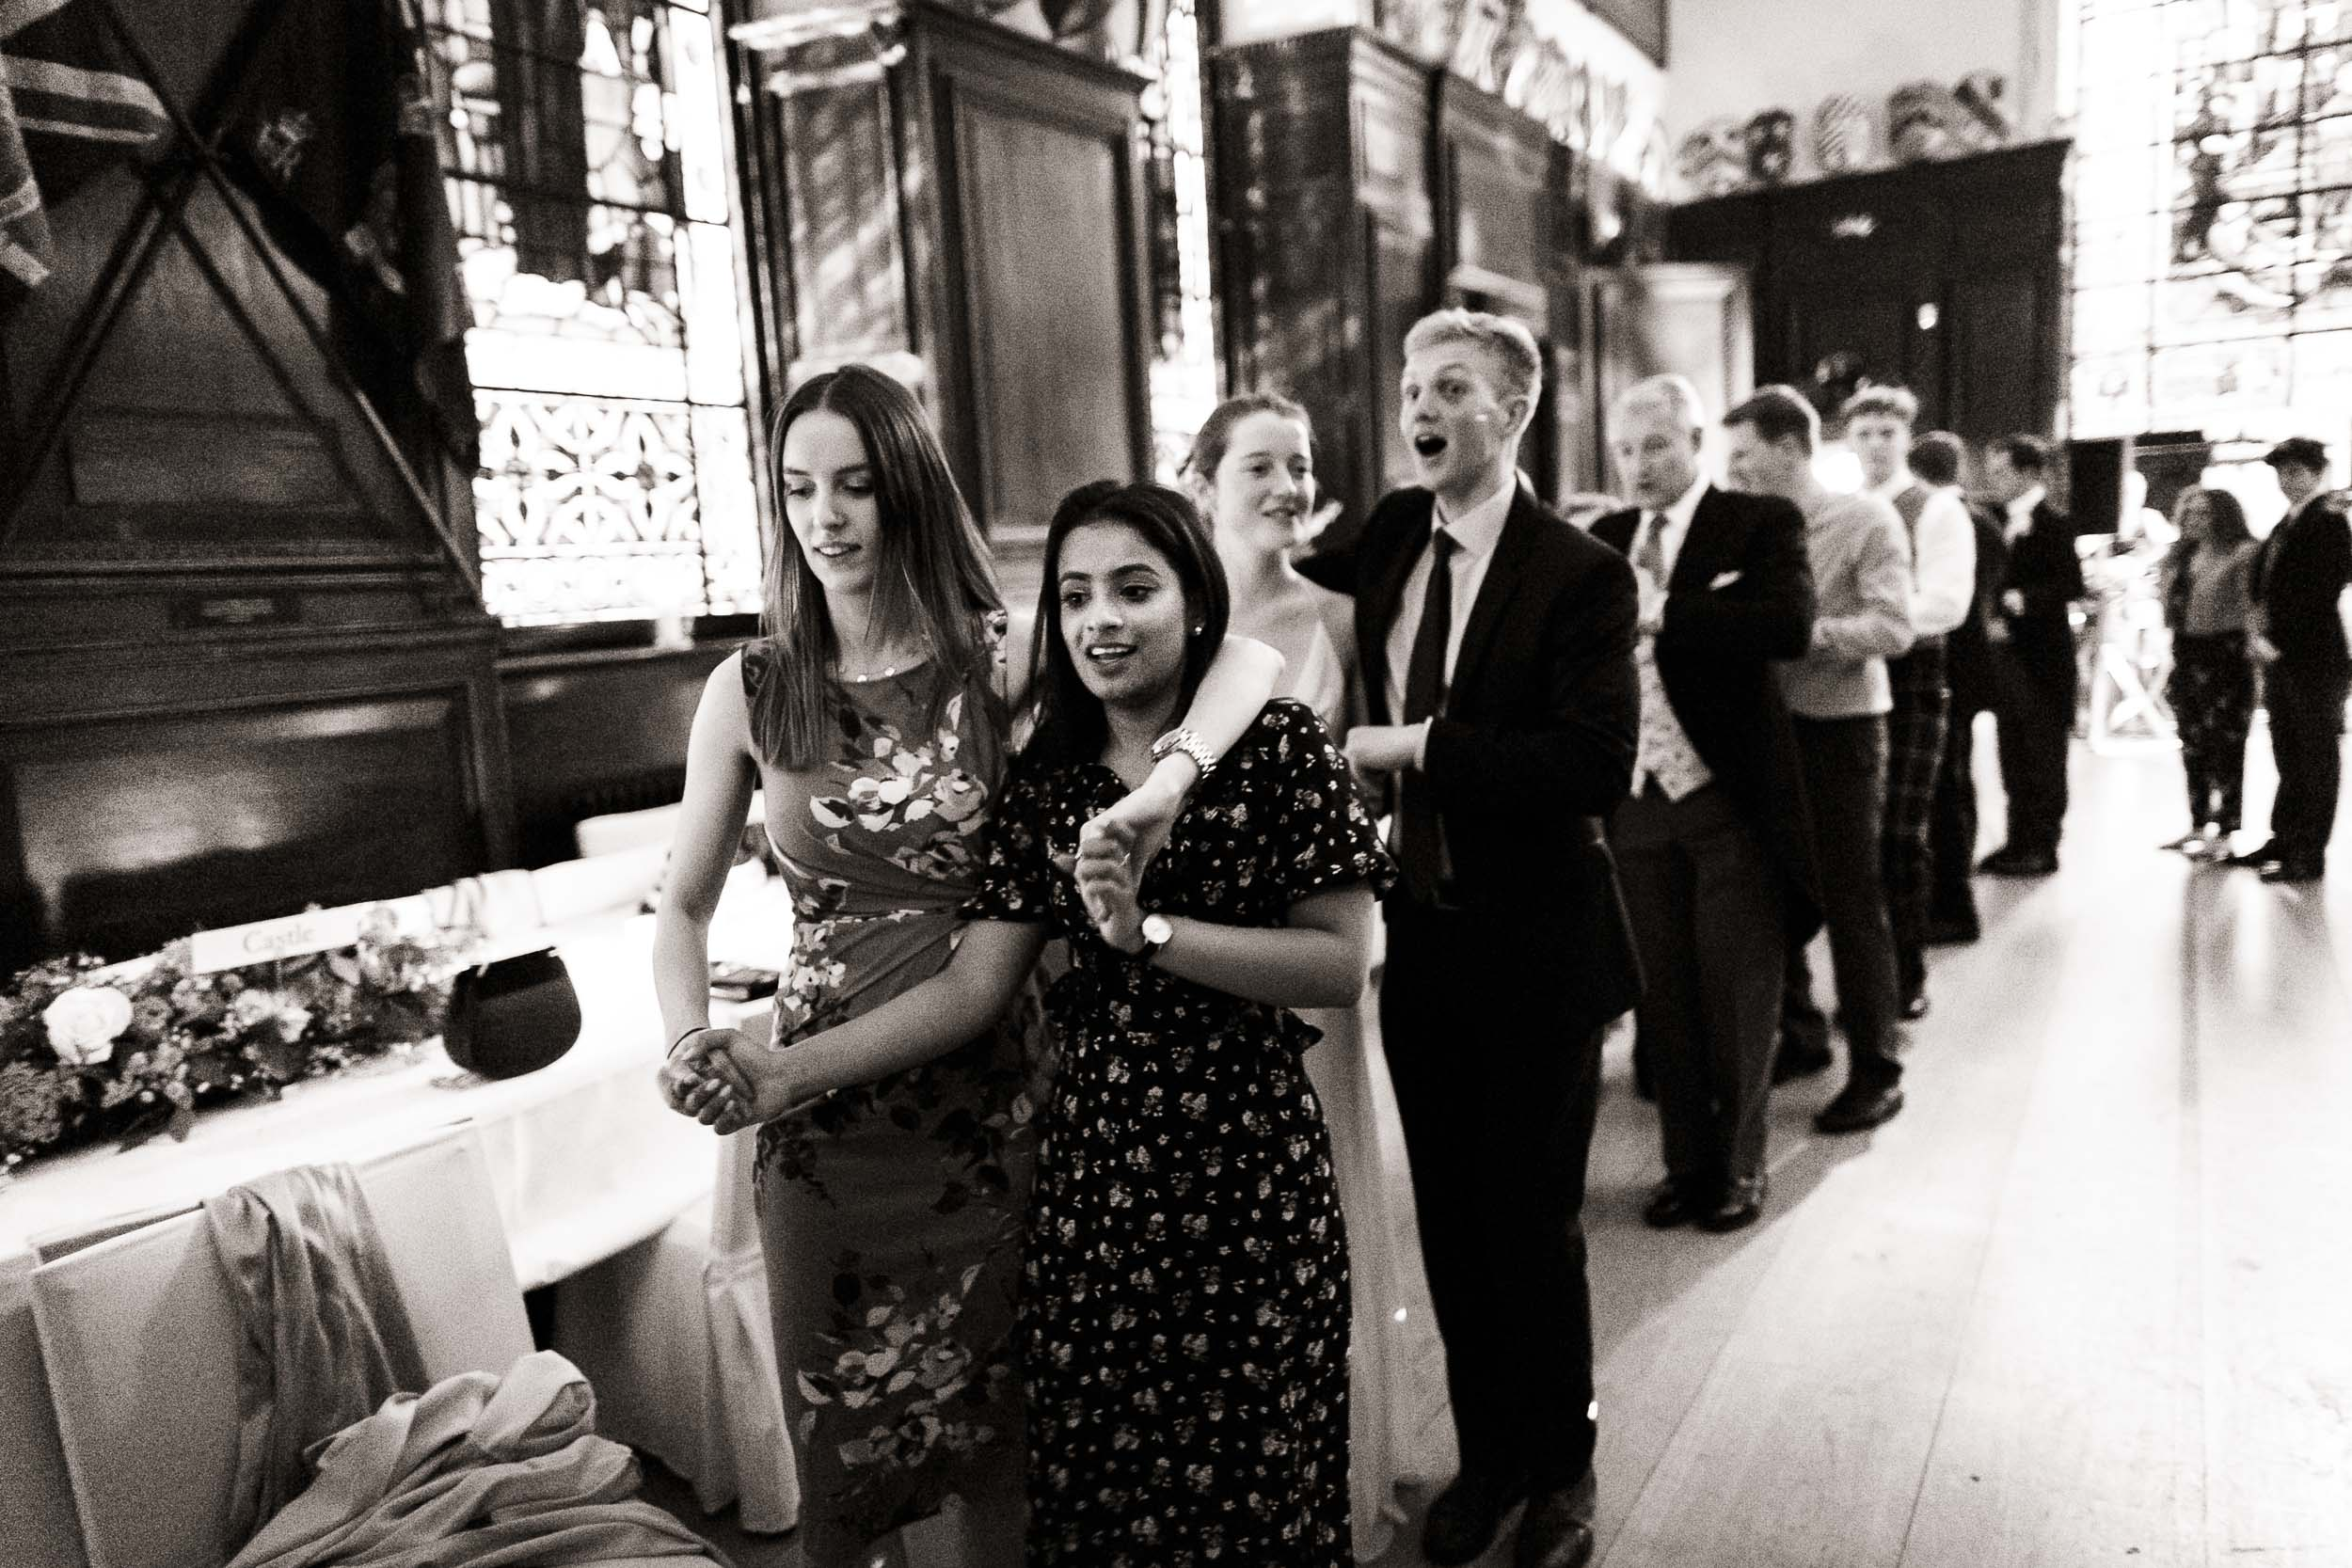 stationers-hall-wedding-photographer-london 125.jpg